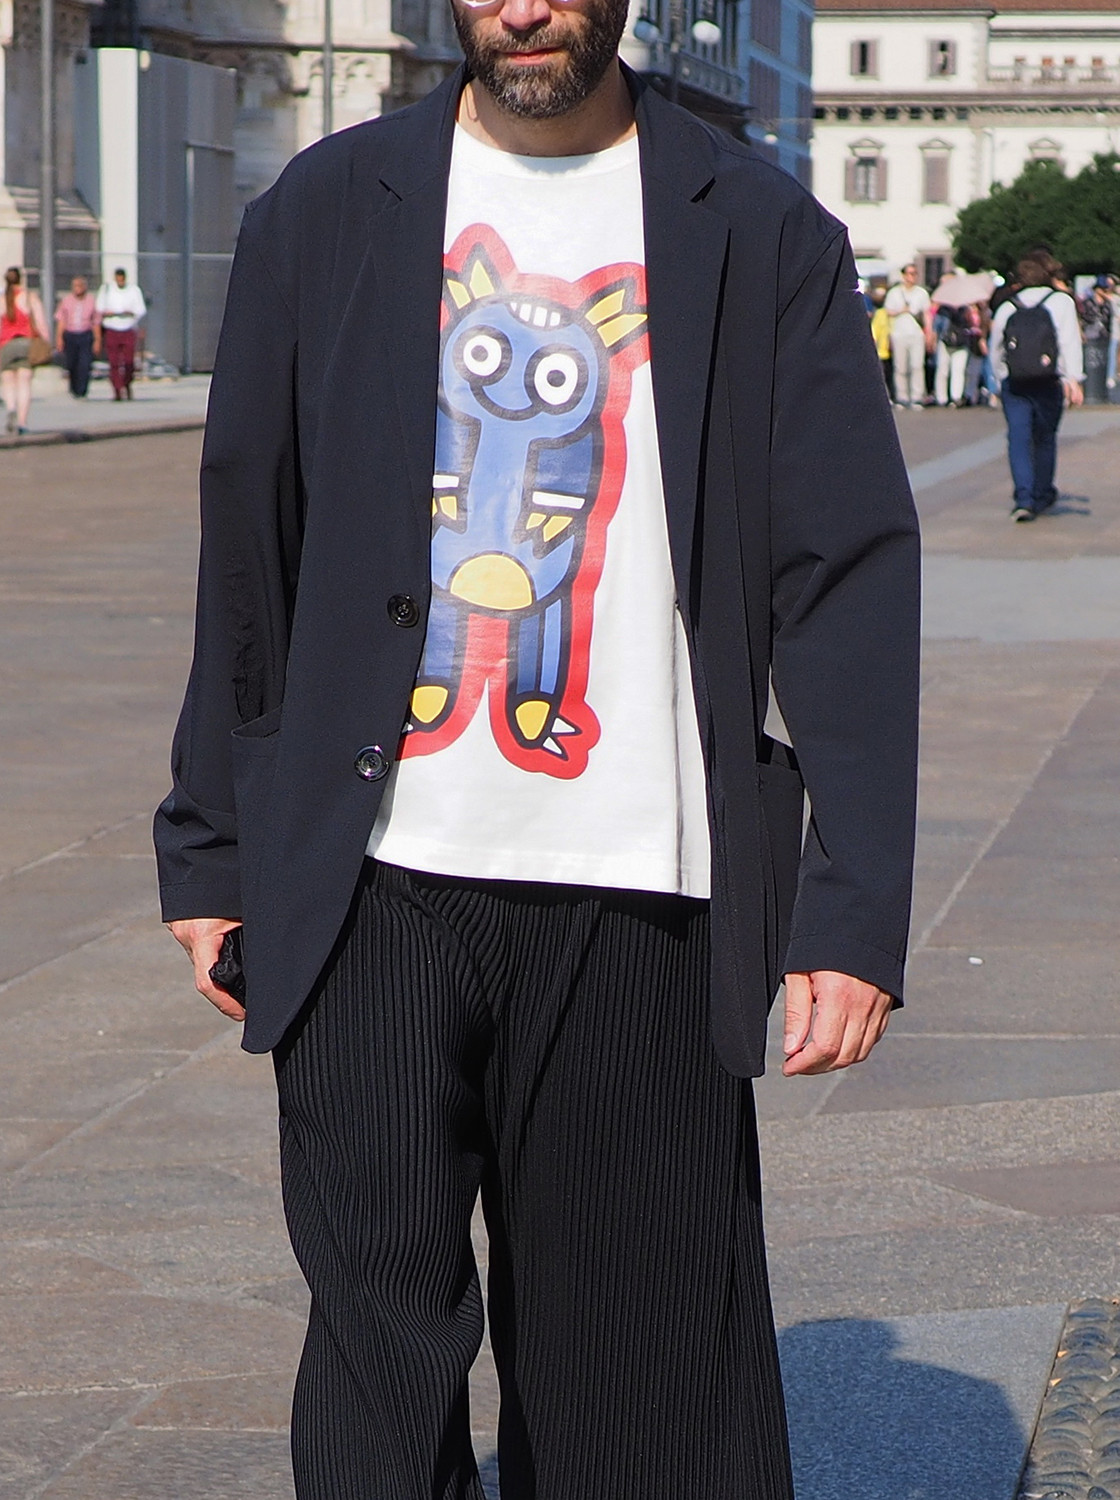 Men's outfit idea for 2021 with navy unstructured blazer, white graphic printed crew neck t-shirt, black cords, converse. Suitable for spring and autumn.